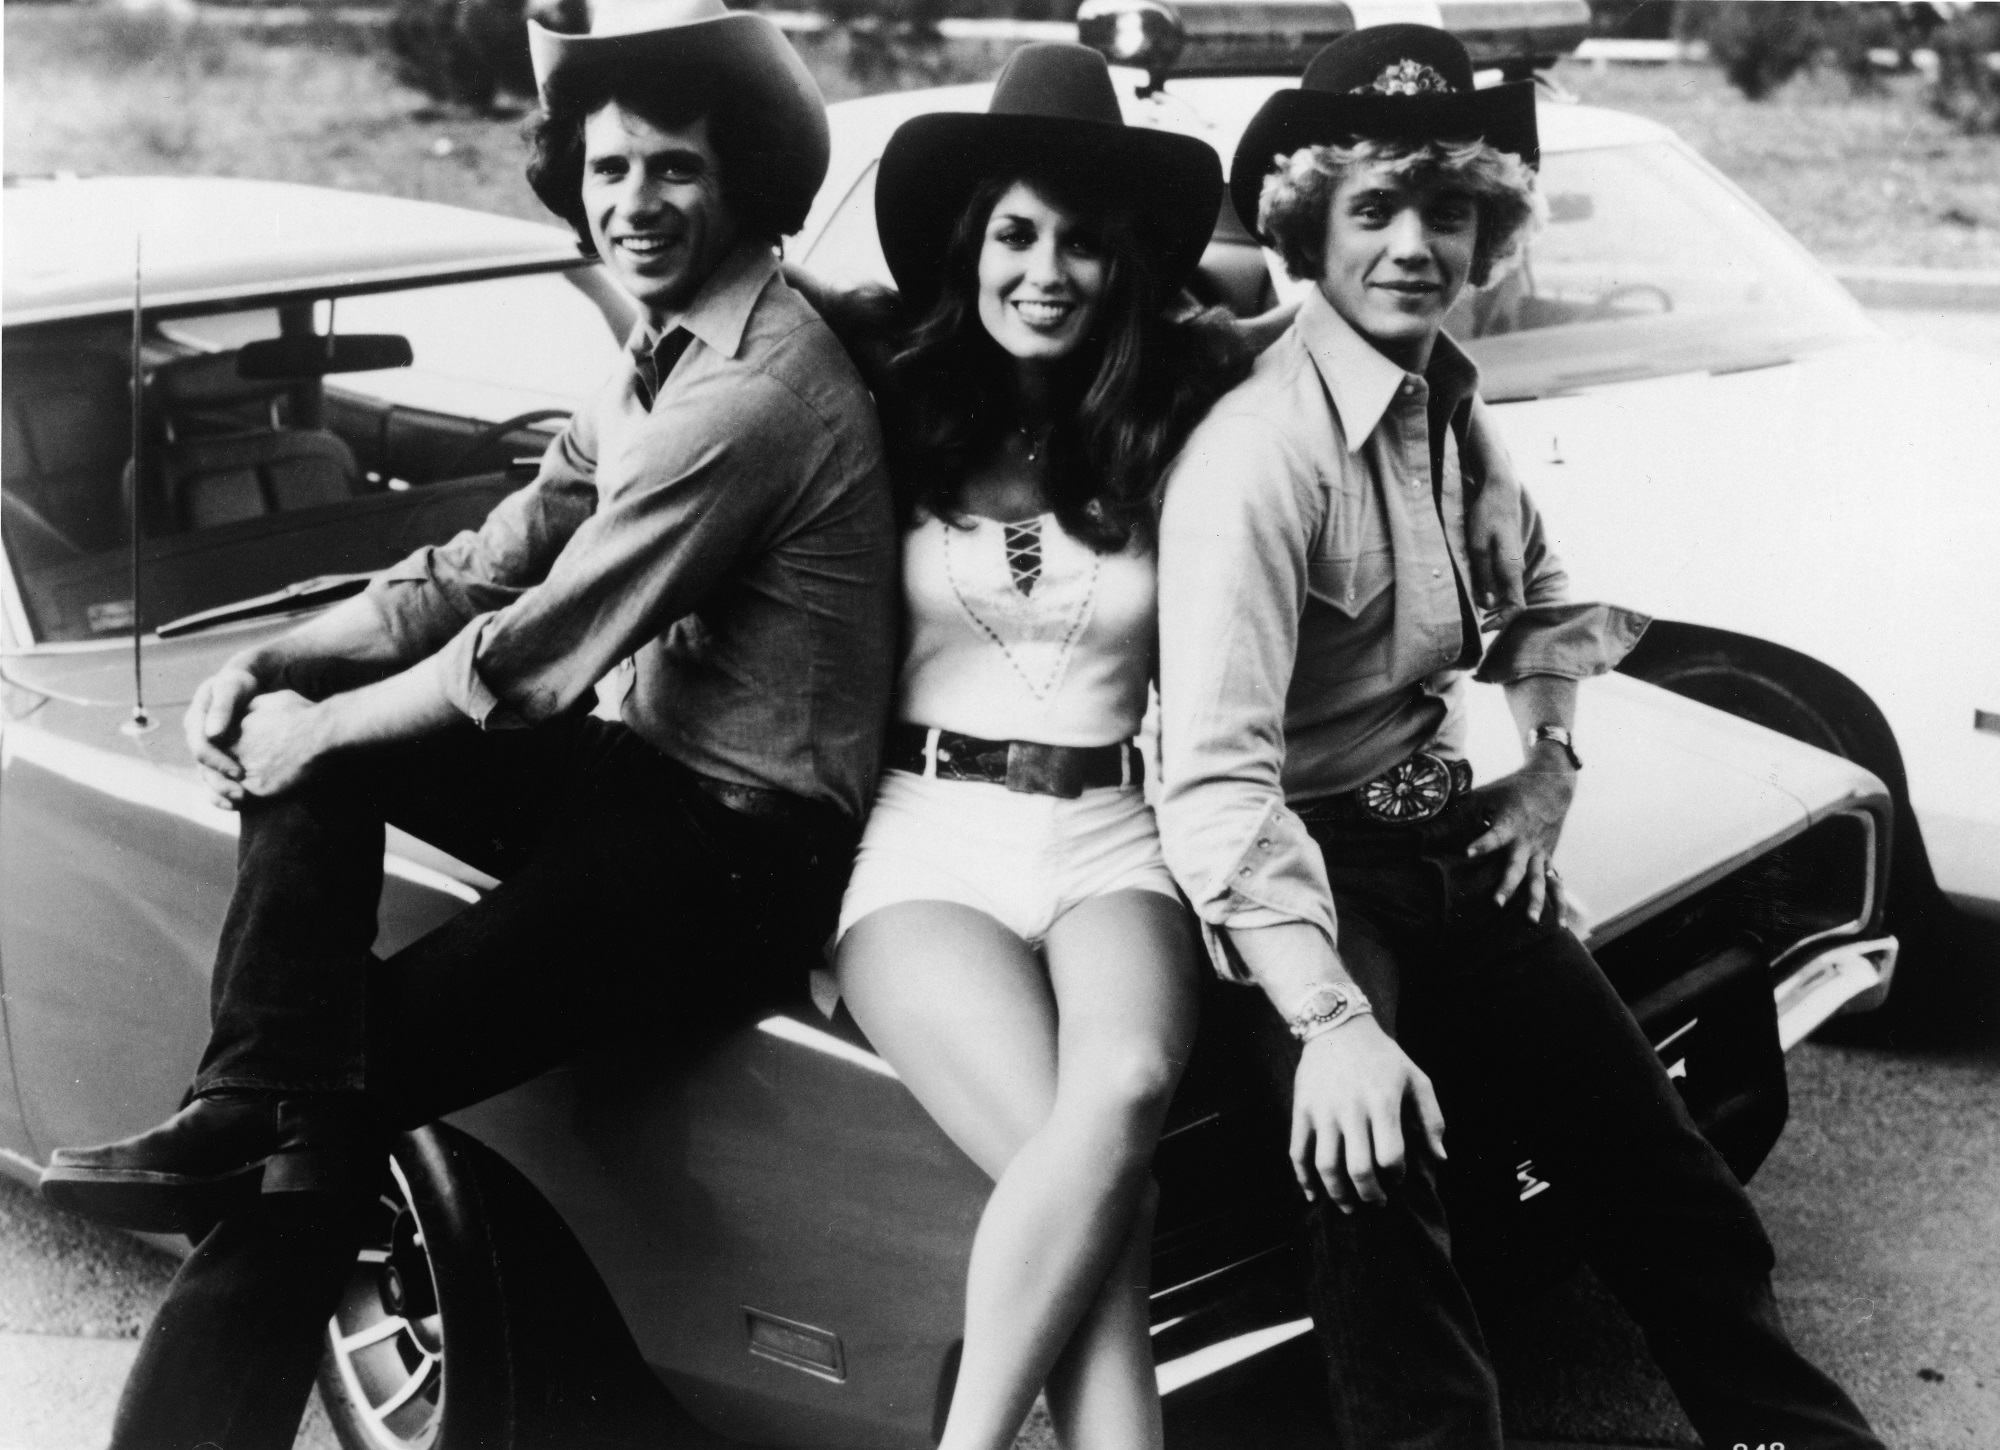 Tom Wopat, Catherine Bach, and John Schneider pose on The Dukes of Hazzard car, the General Lee